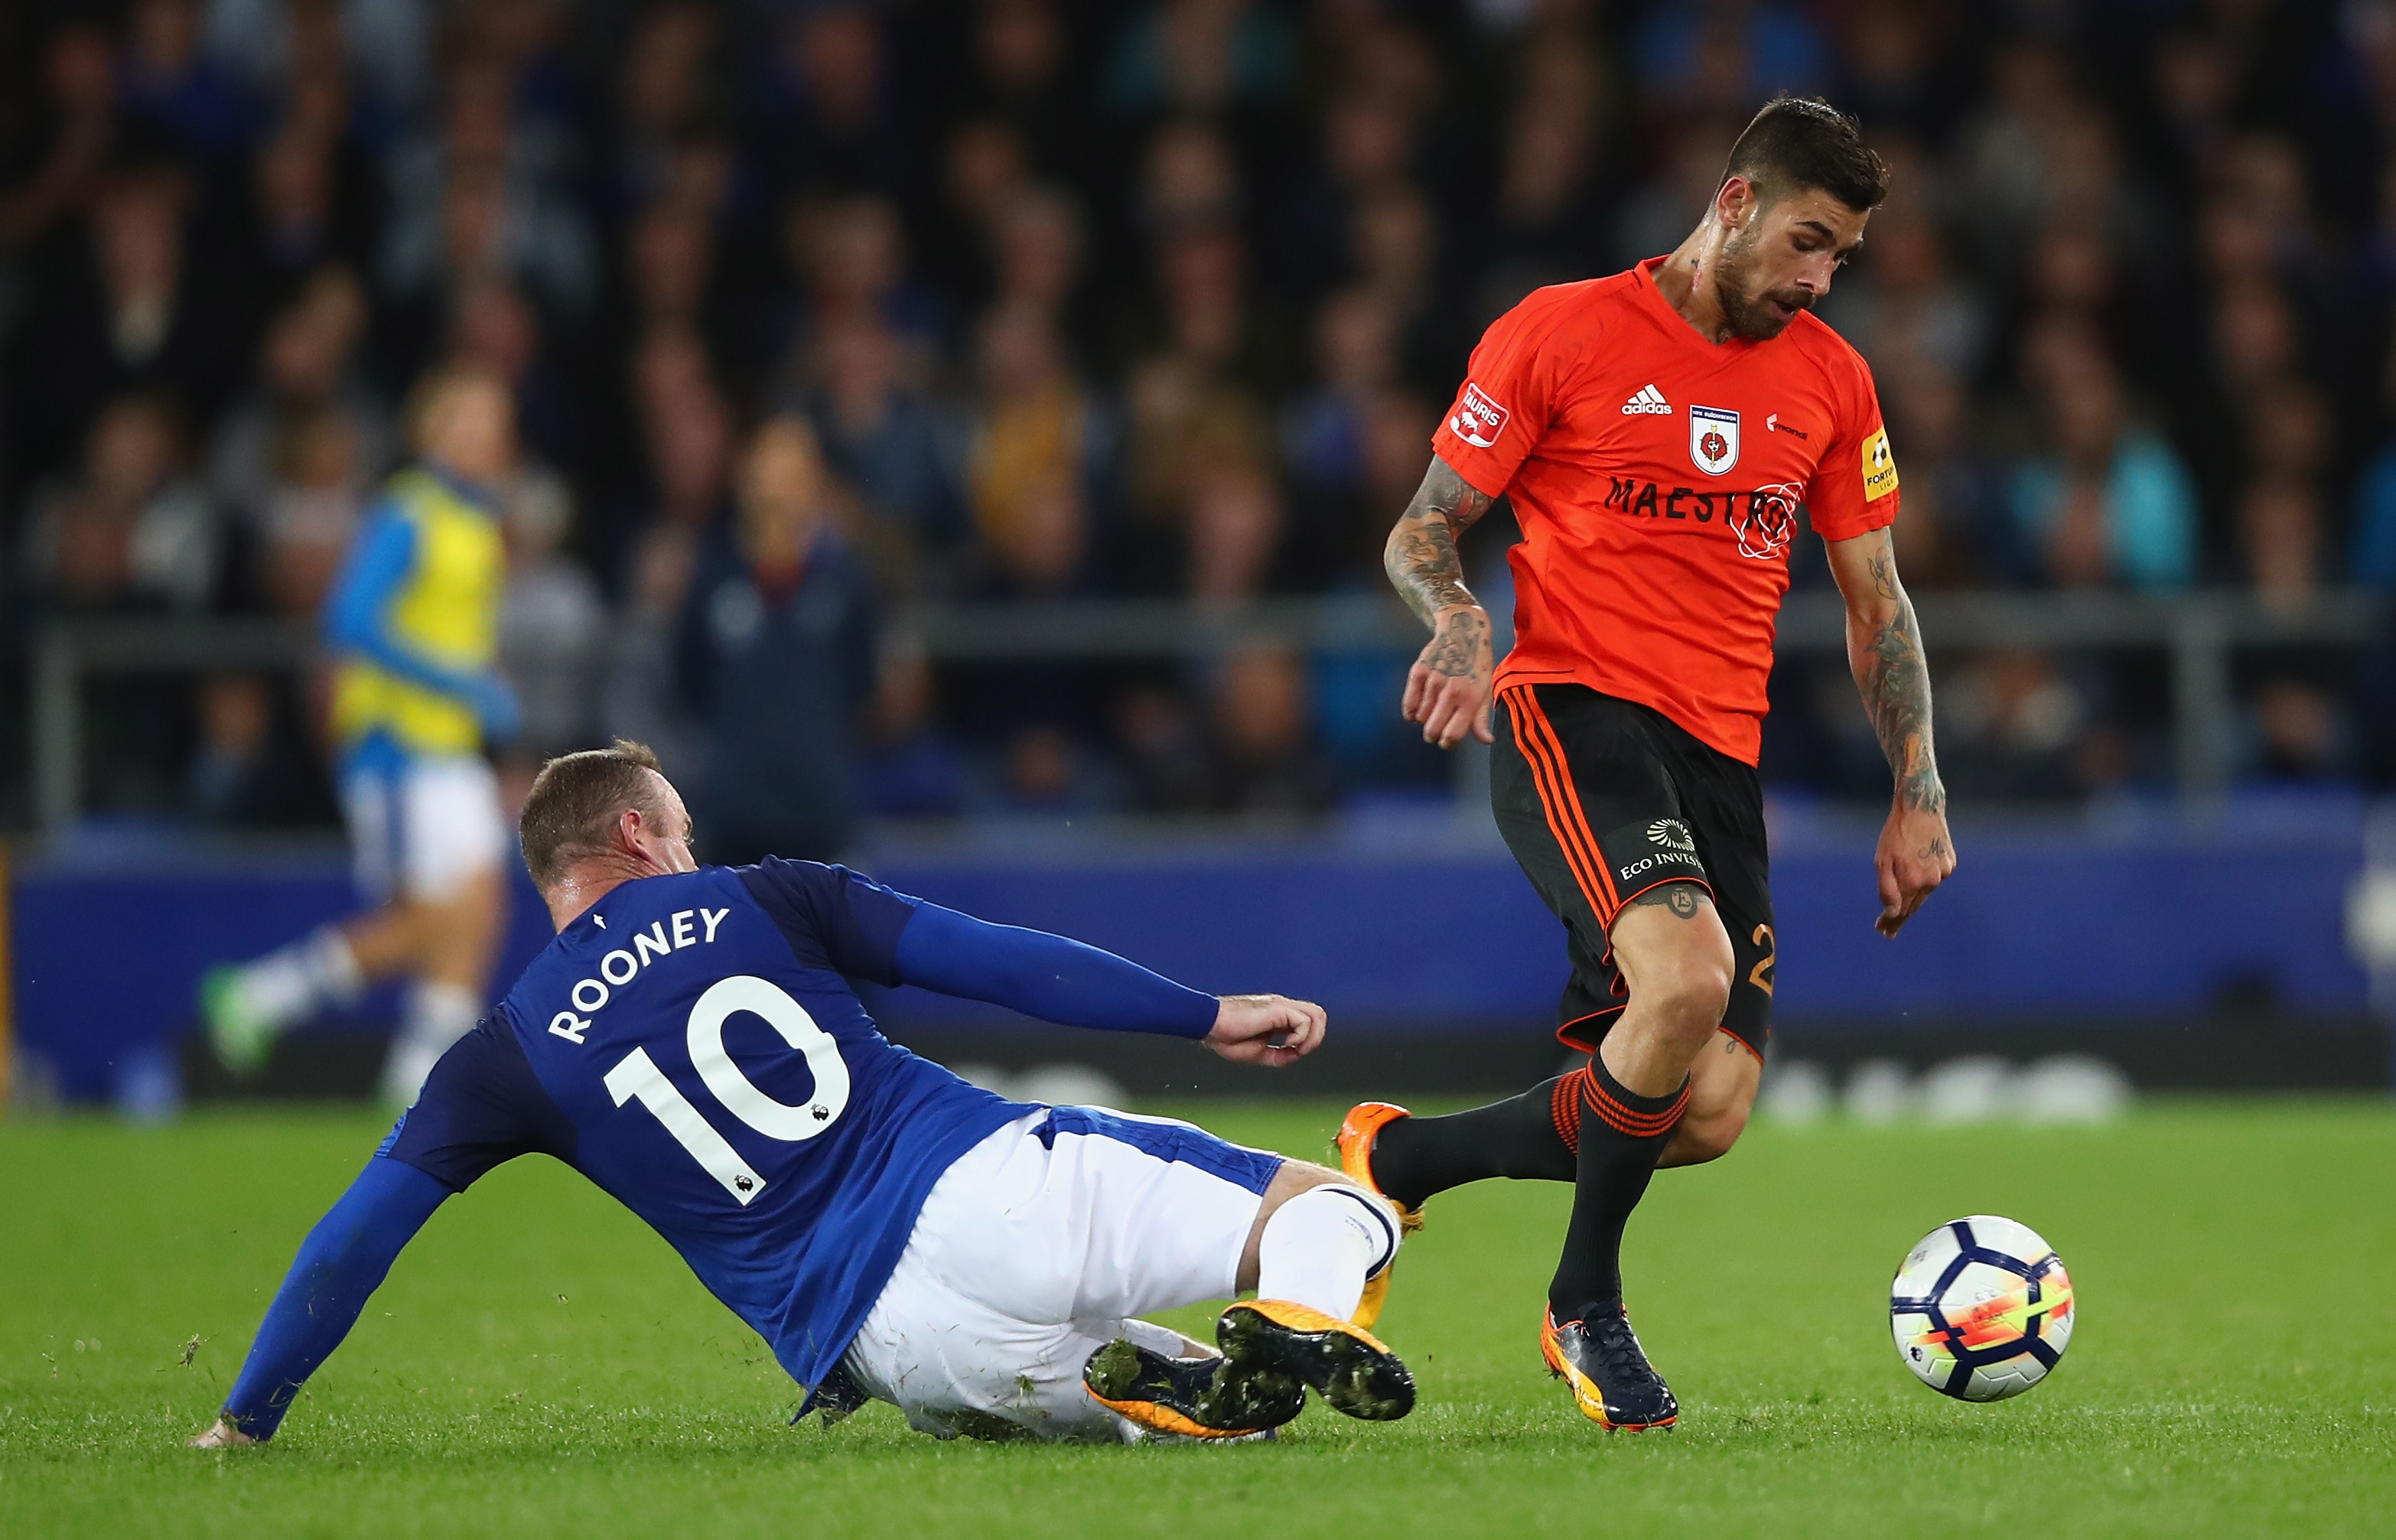 We were lucky - Koeman frustrated by Everton's second-half struggle